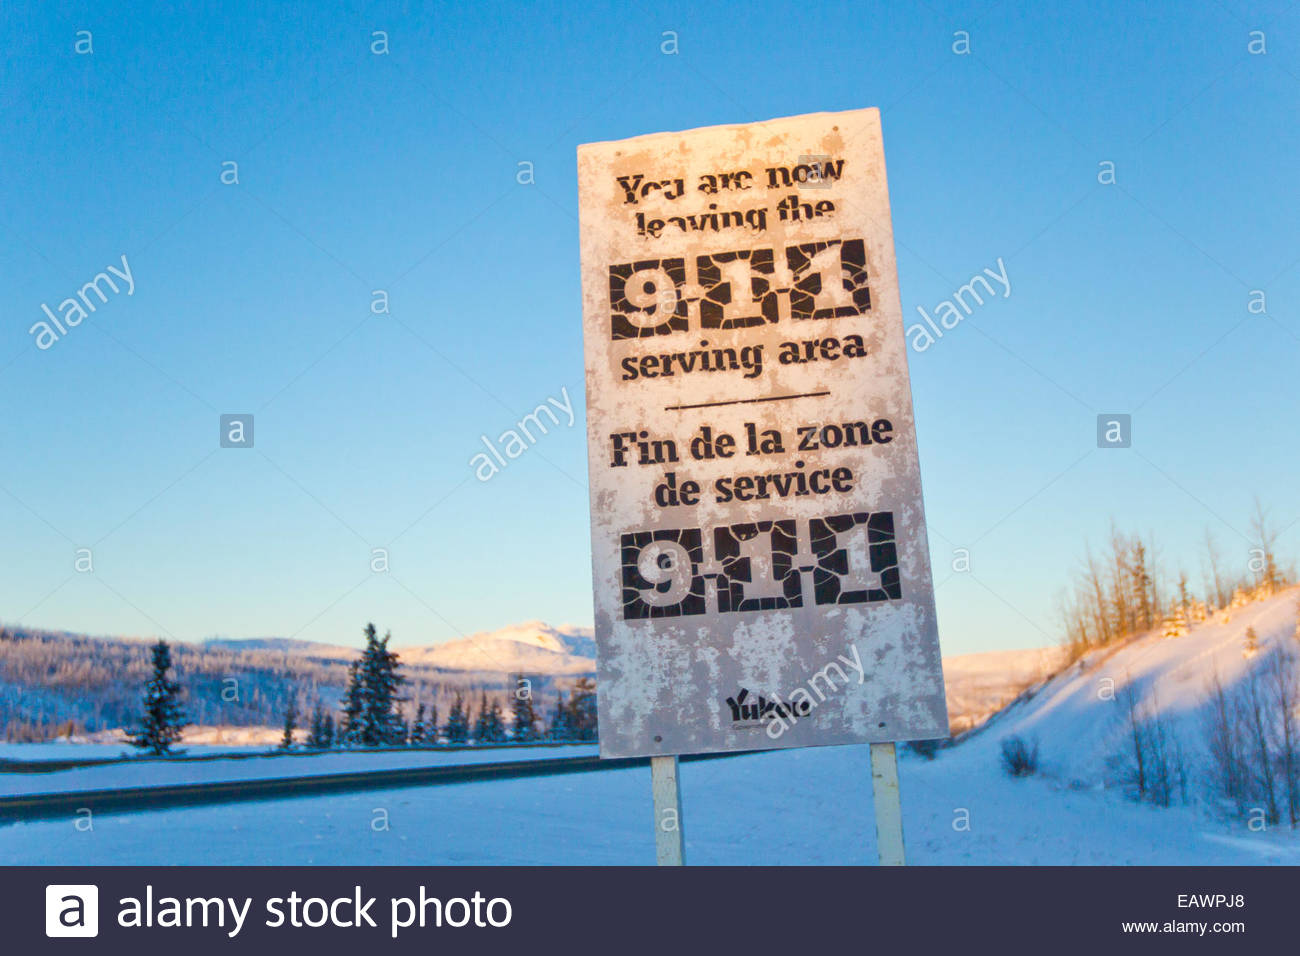 Sign warning people driving north that 911 is unavailable in the area. - Stock Image